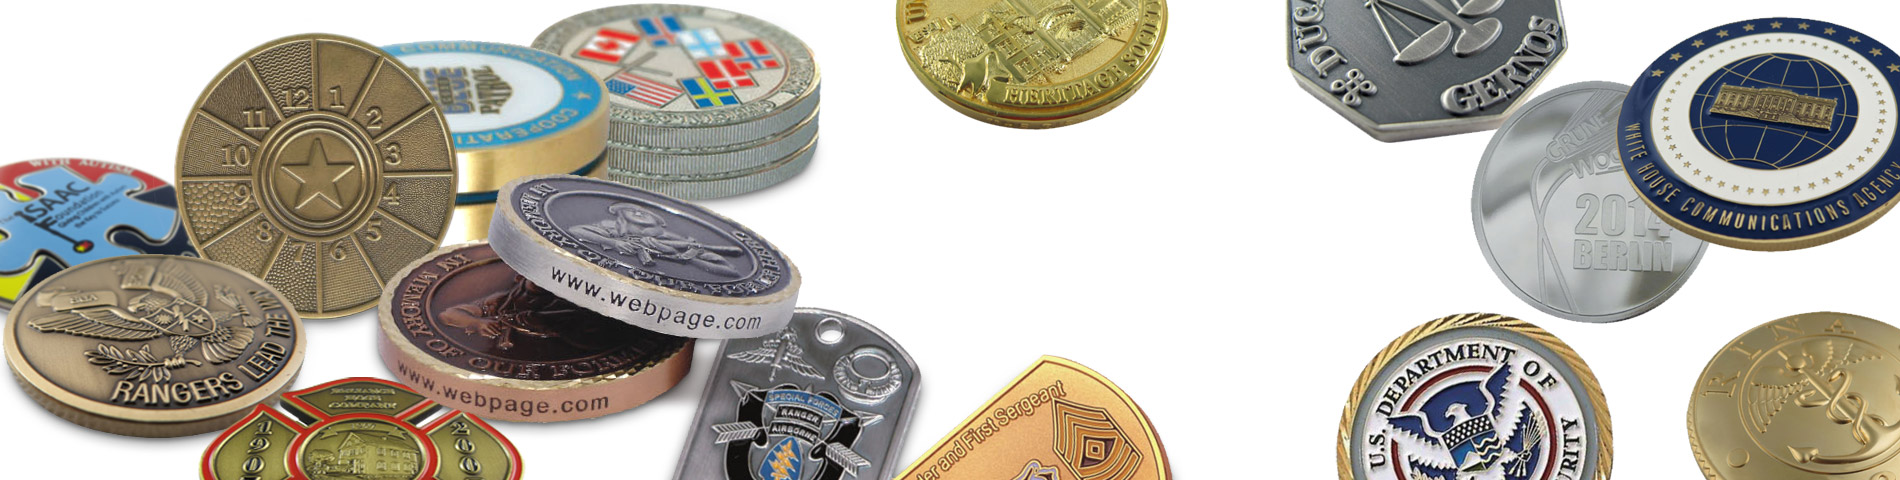 Custom made challenge coins